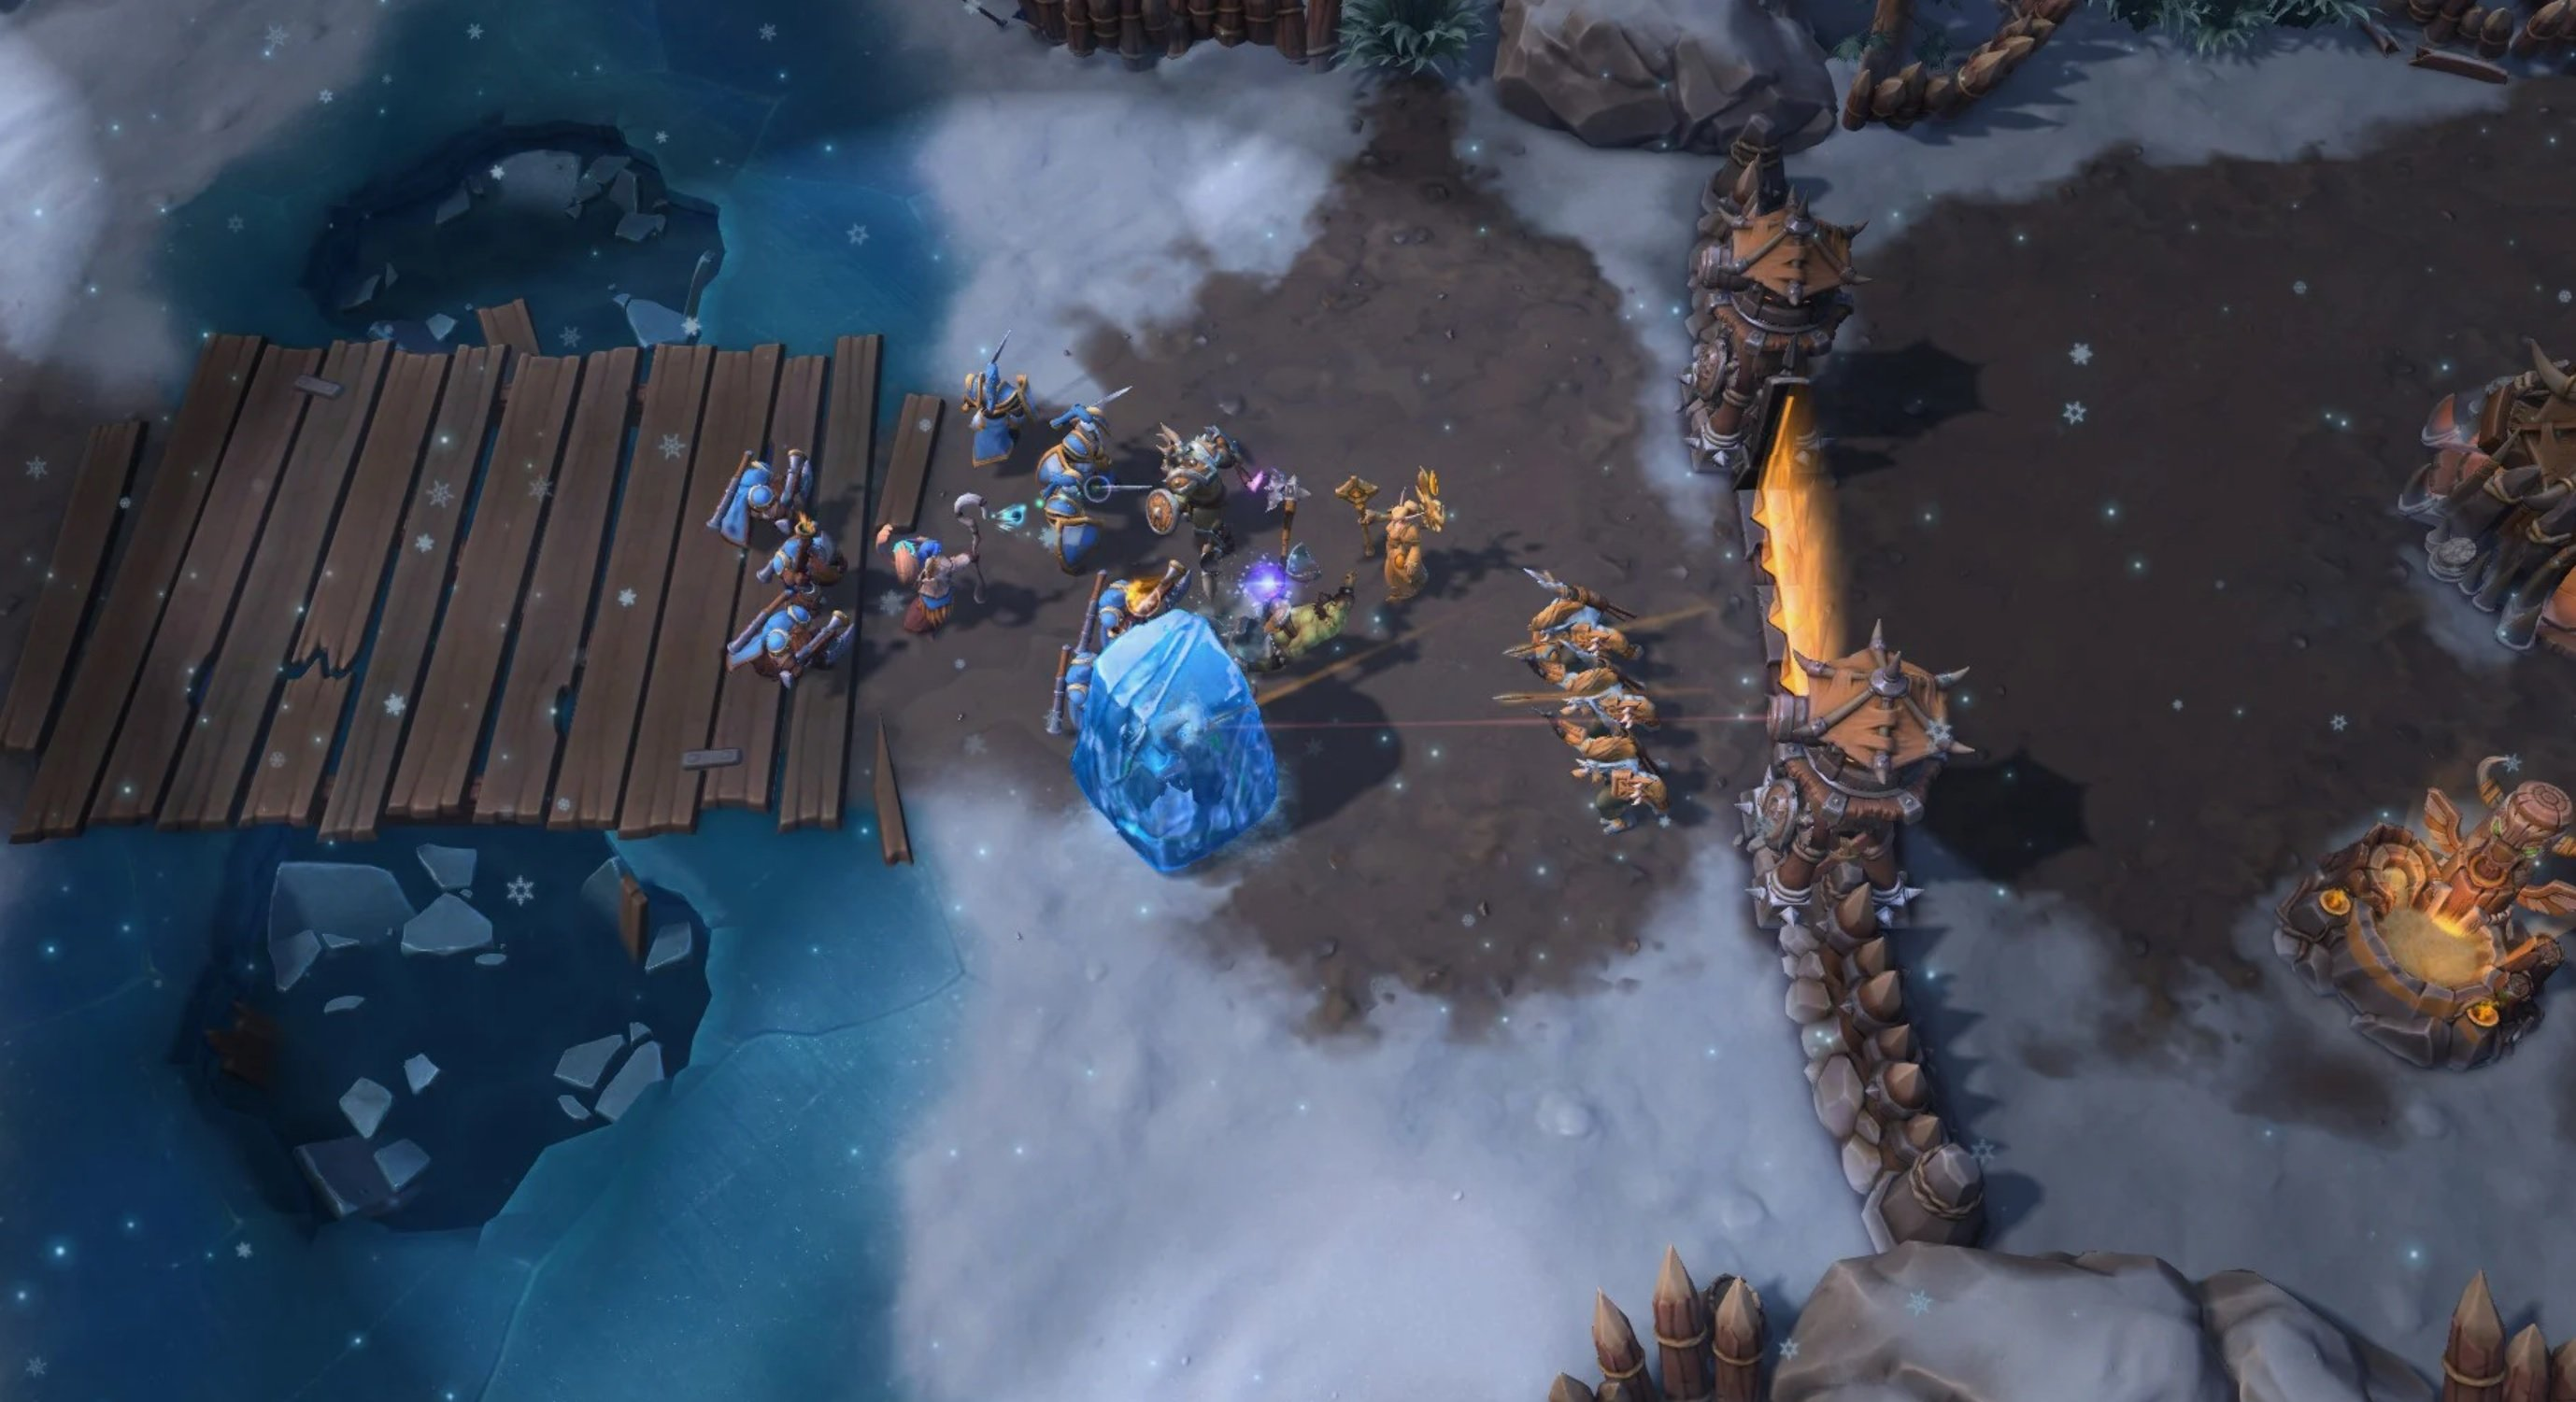 After overwhelming fan feedback, Blizzard removed the climate mechanic from Heroes of the Storm